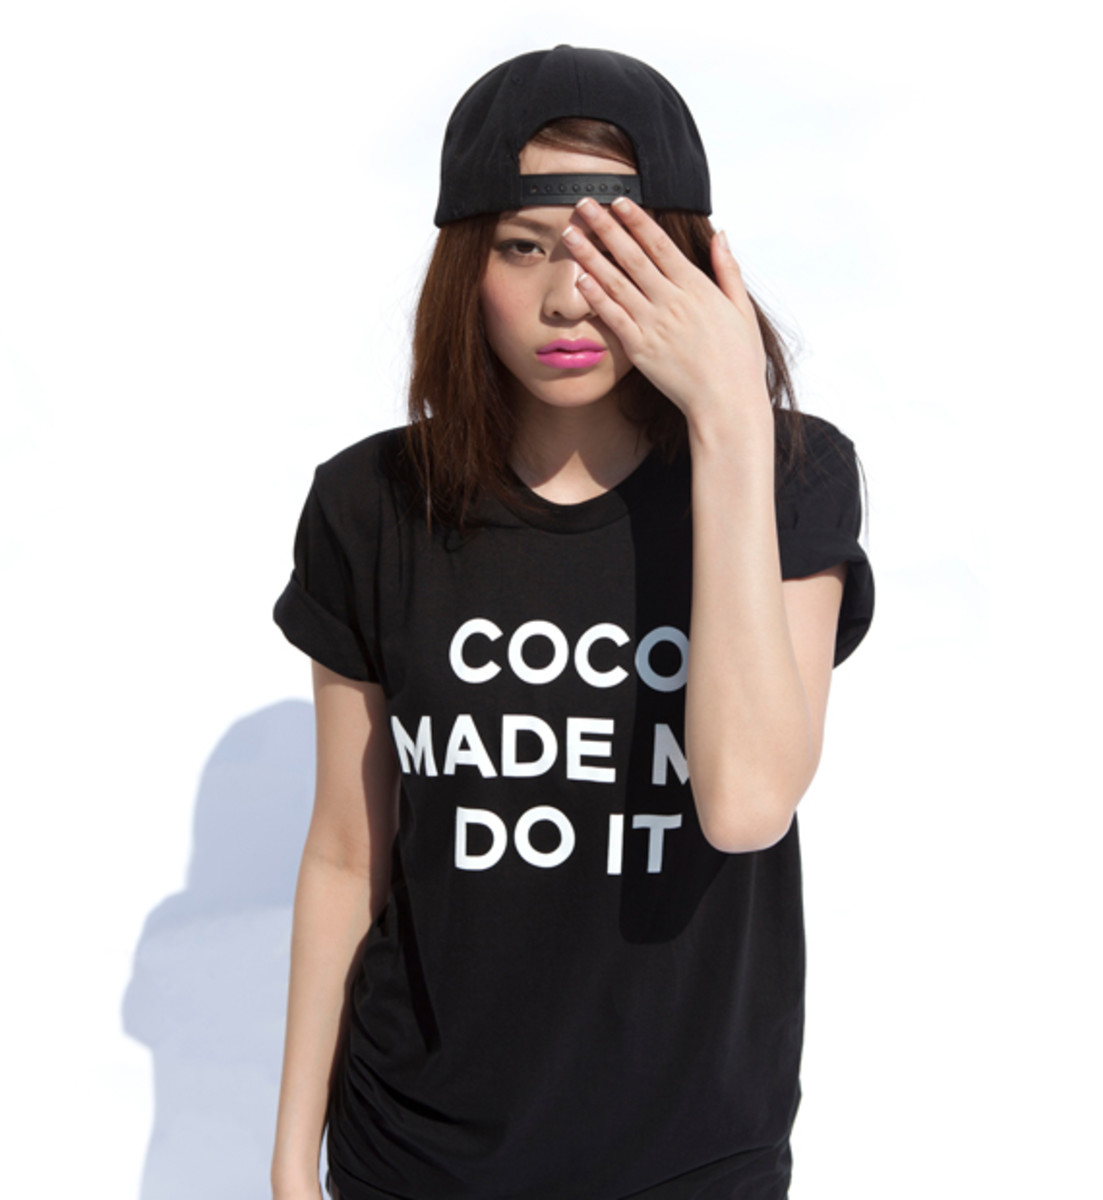 ssur-clot-gutter-store-coco-made-me-do-it-collection-04